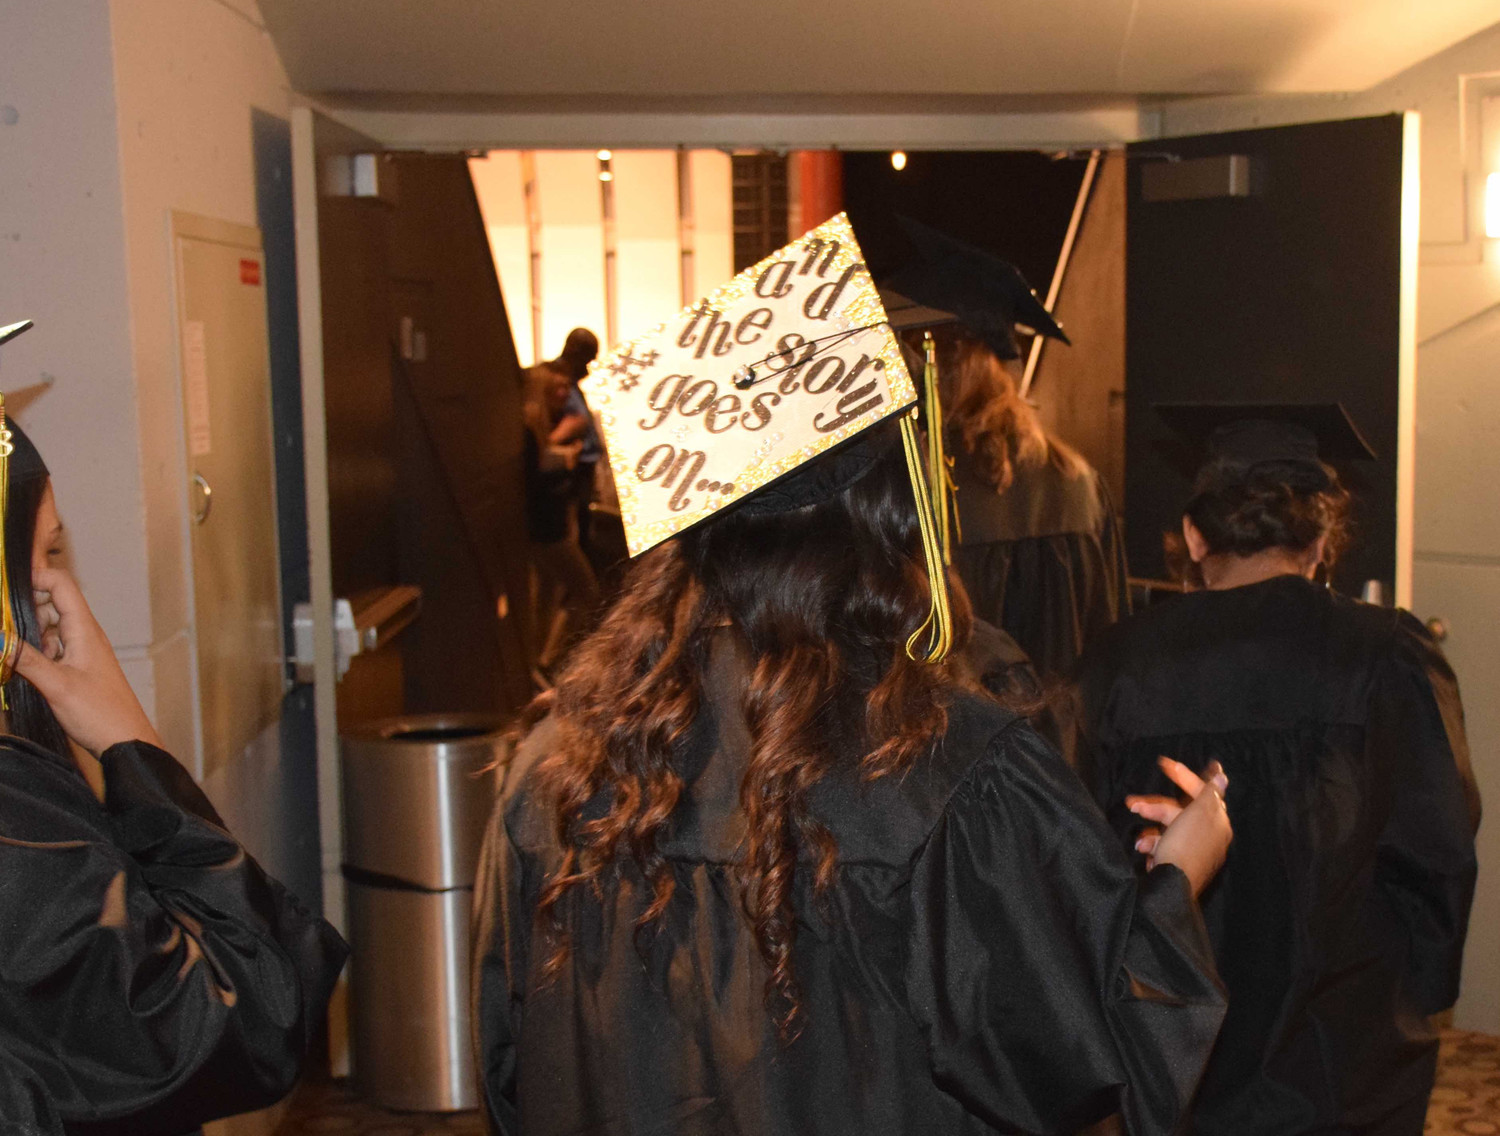 Many of the graduates wore decorated mortarboards.